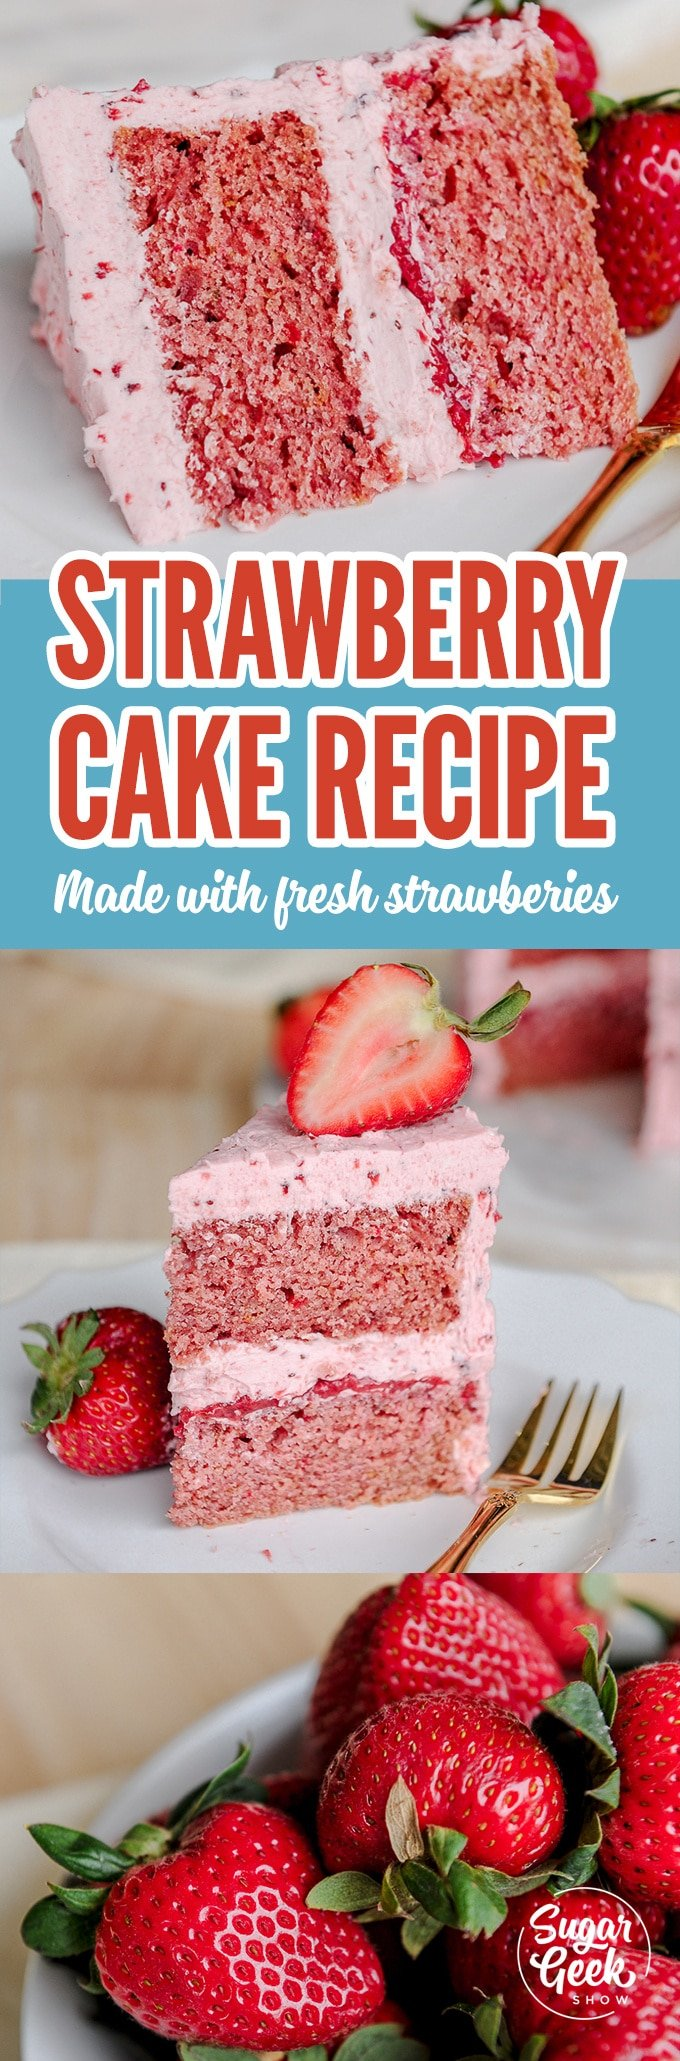 The best strawberry cake recipe made with real strawberries! Amazing flavor and super moist